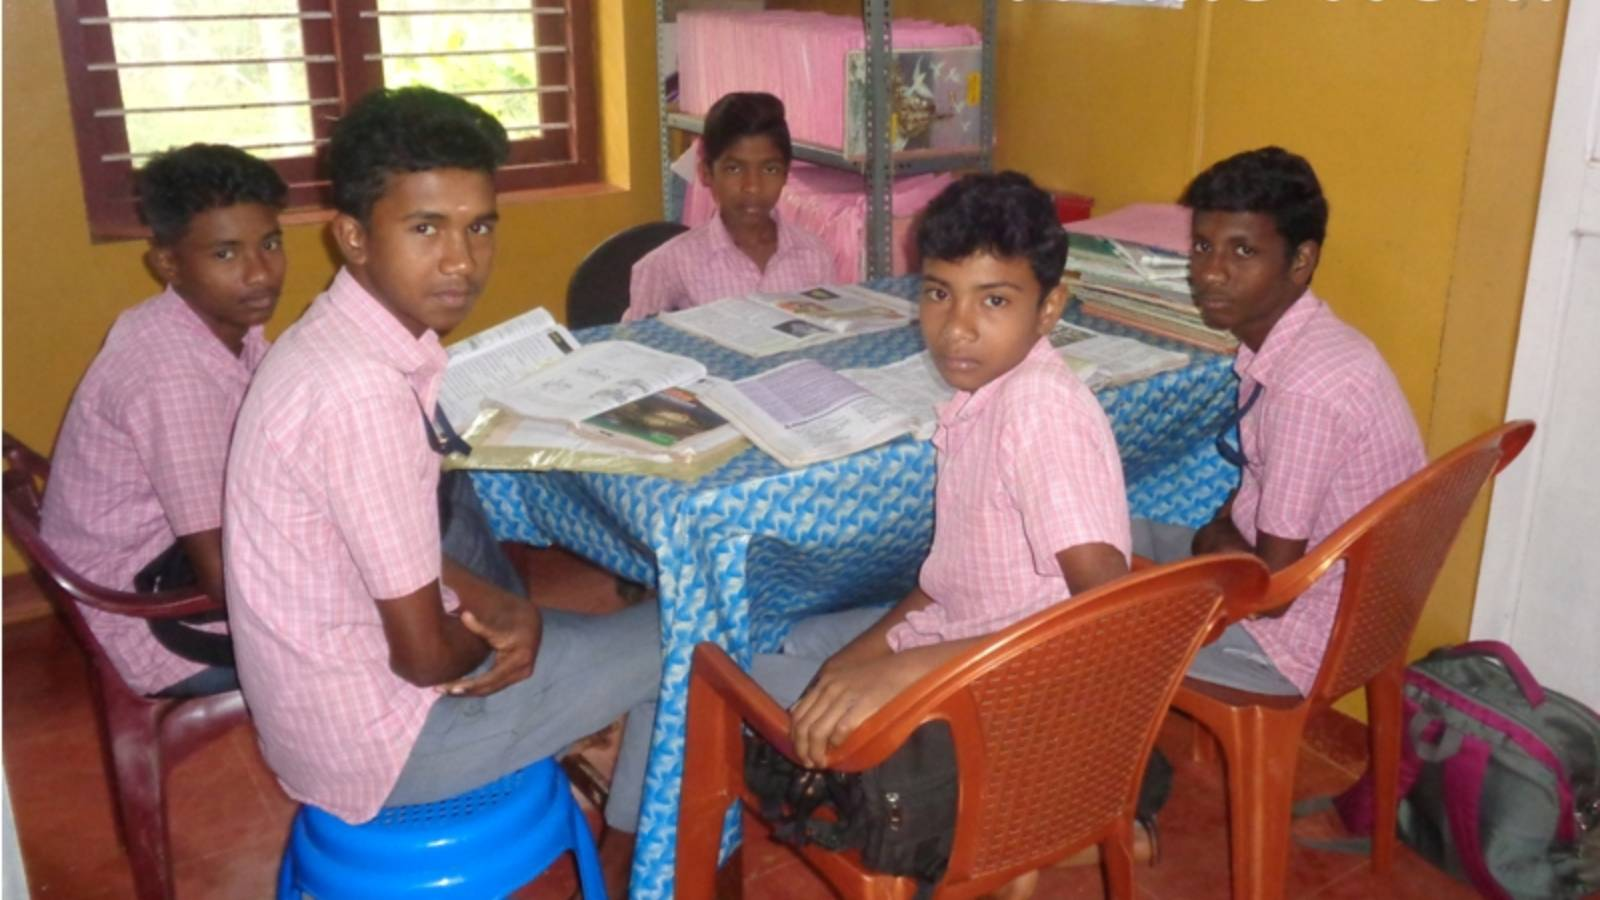 Students doing the